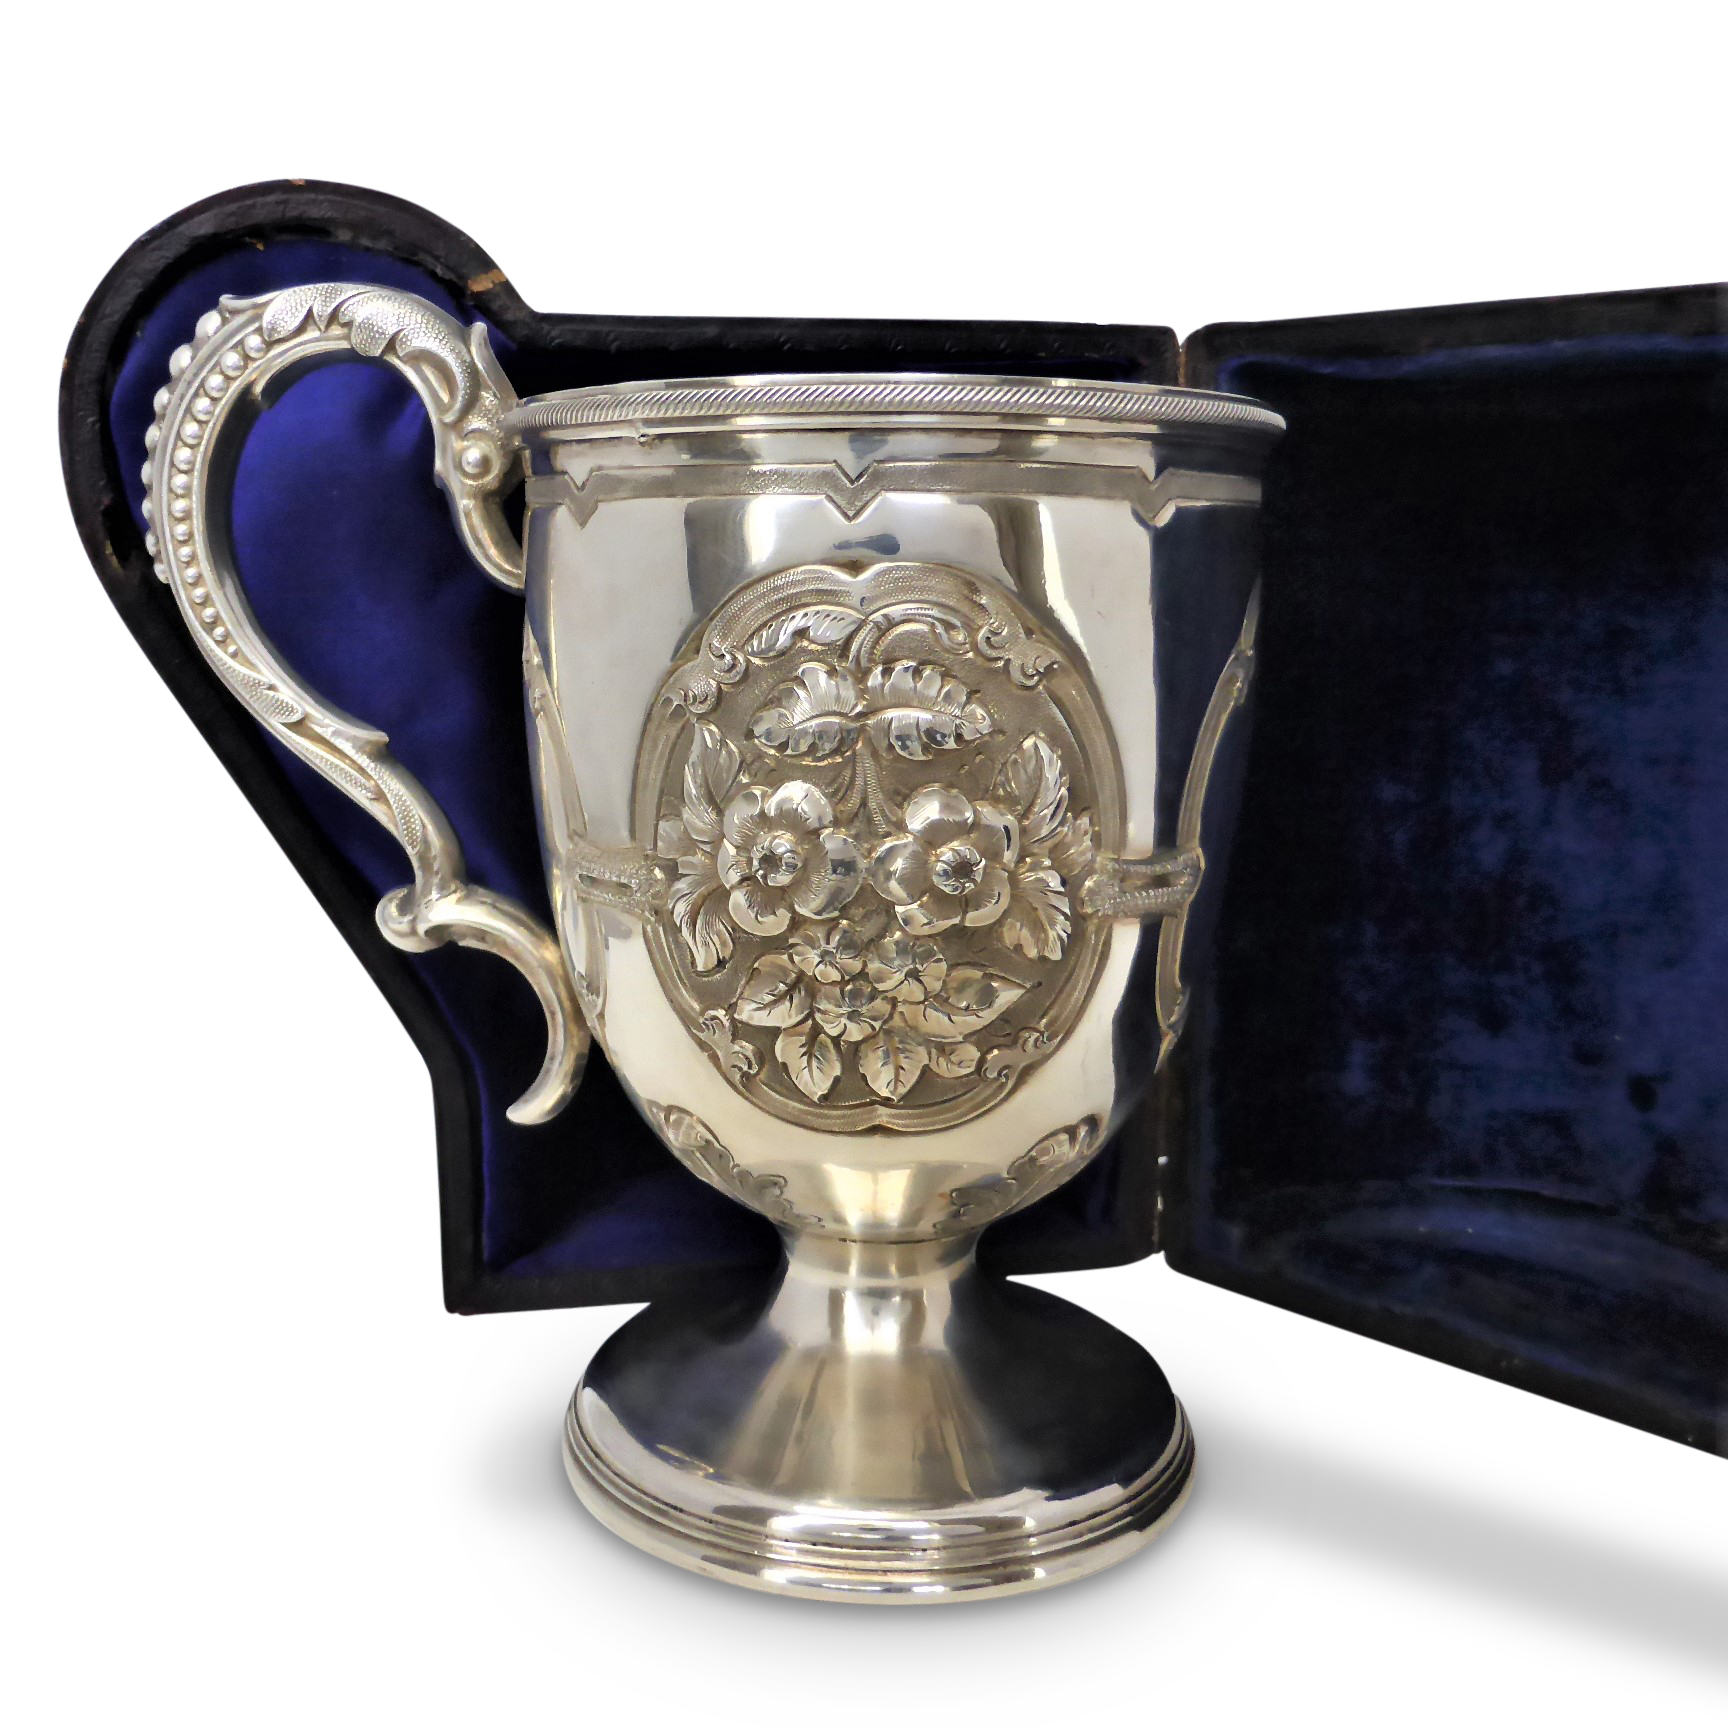 victorian_sterling_silver_repousse_christening_mug_by_hilliard__thomason_cased_1 Beryl Lane - Collectibles